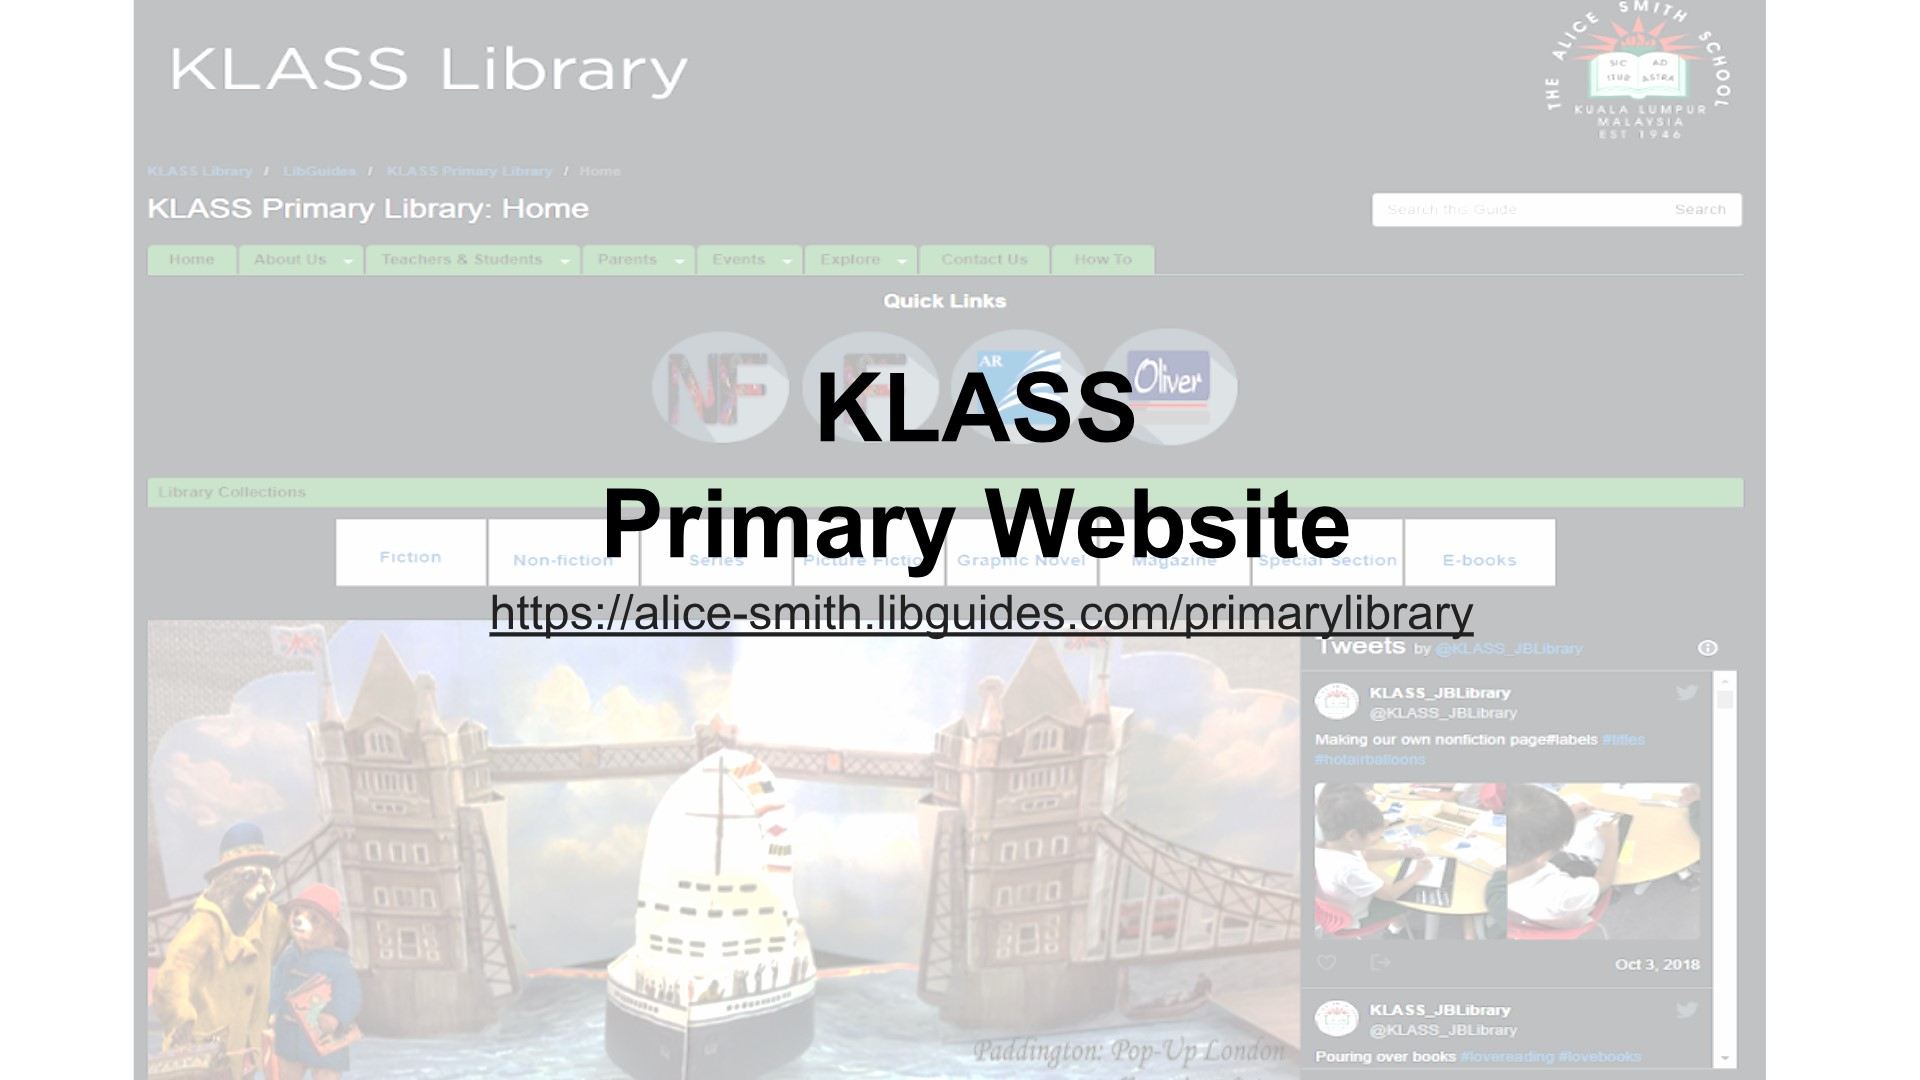 How To: Navigate Primary Library Website